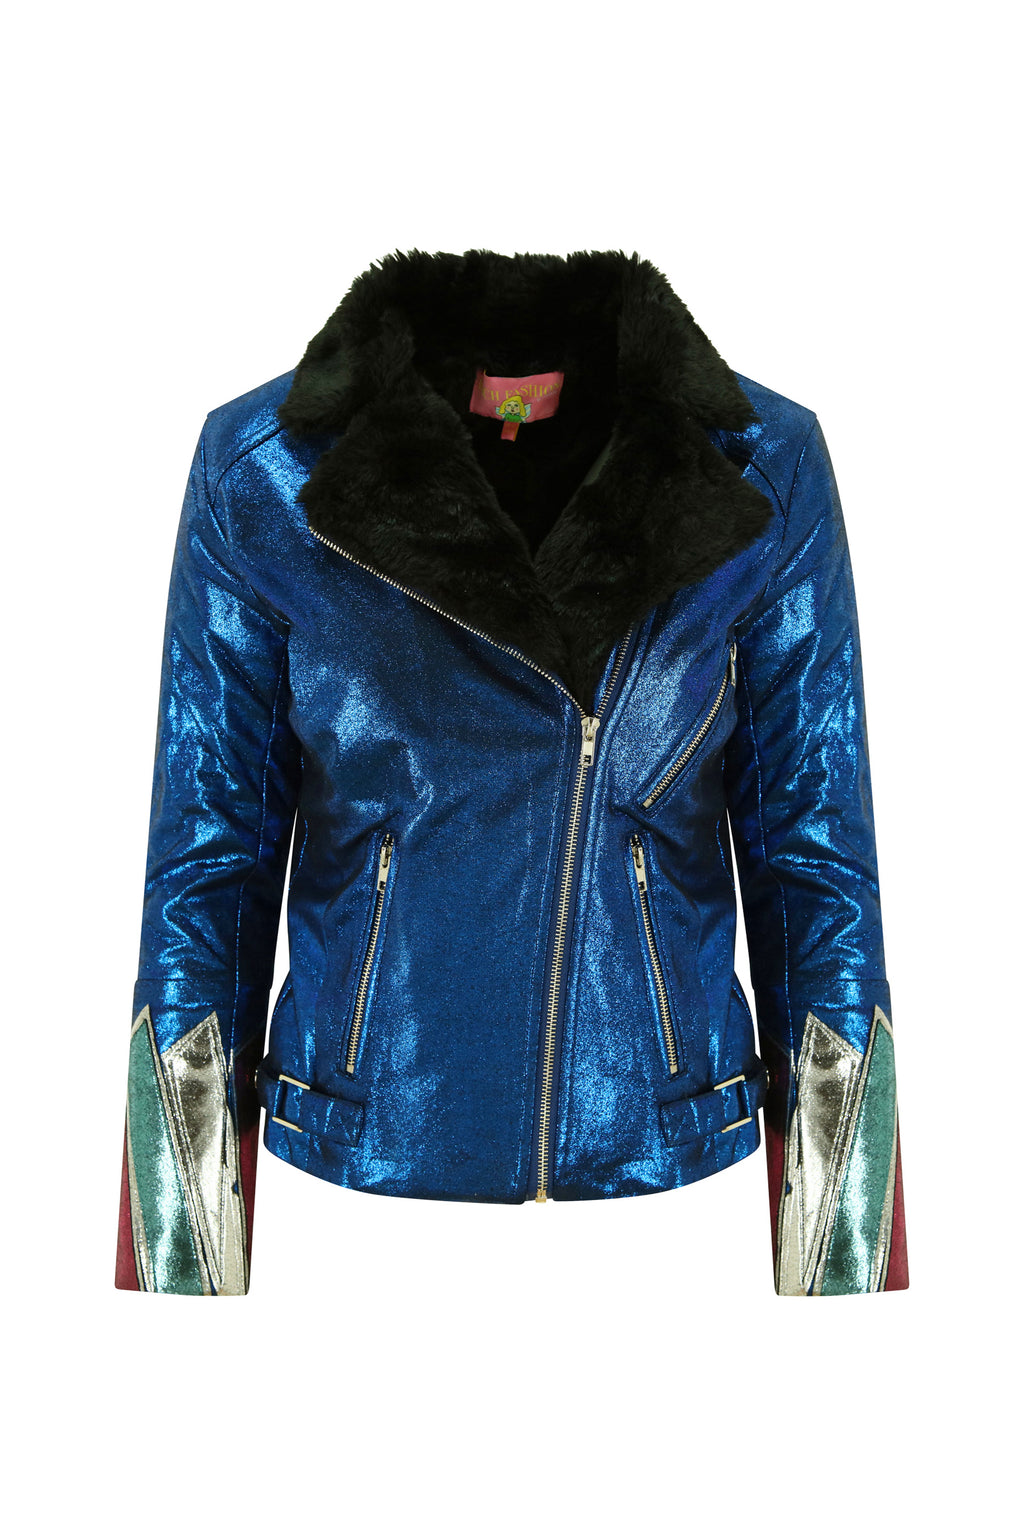 Blue Metallic Faux Leather and Fur Jacket